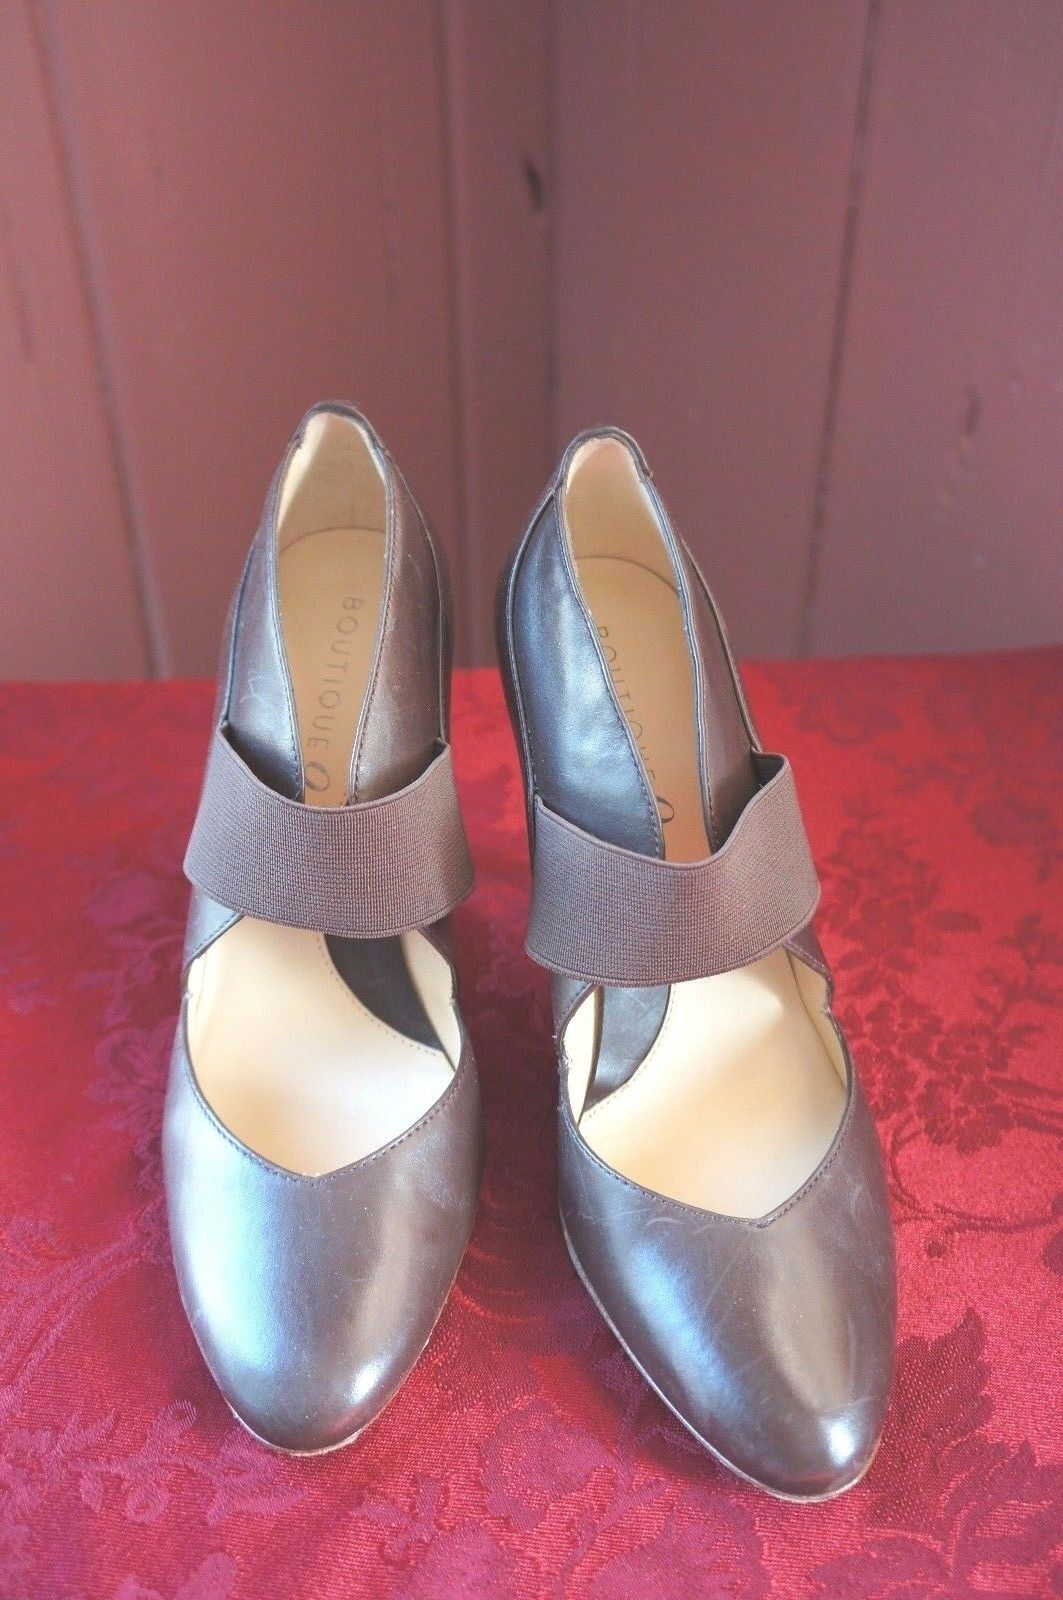 WOMEN'S BOUTIQUE 9  BTHAYES  HIGH HEEL SHOES SIZE  7.5 M